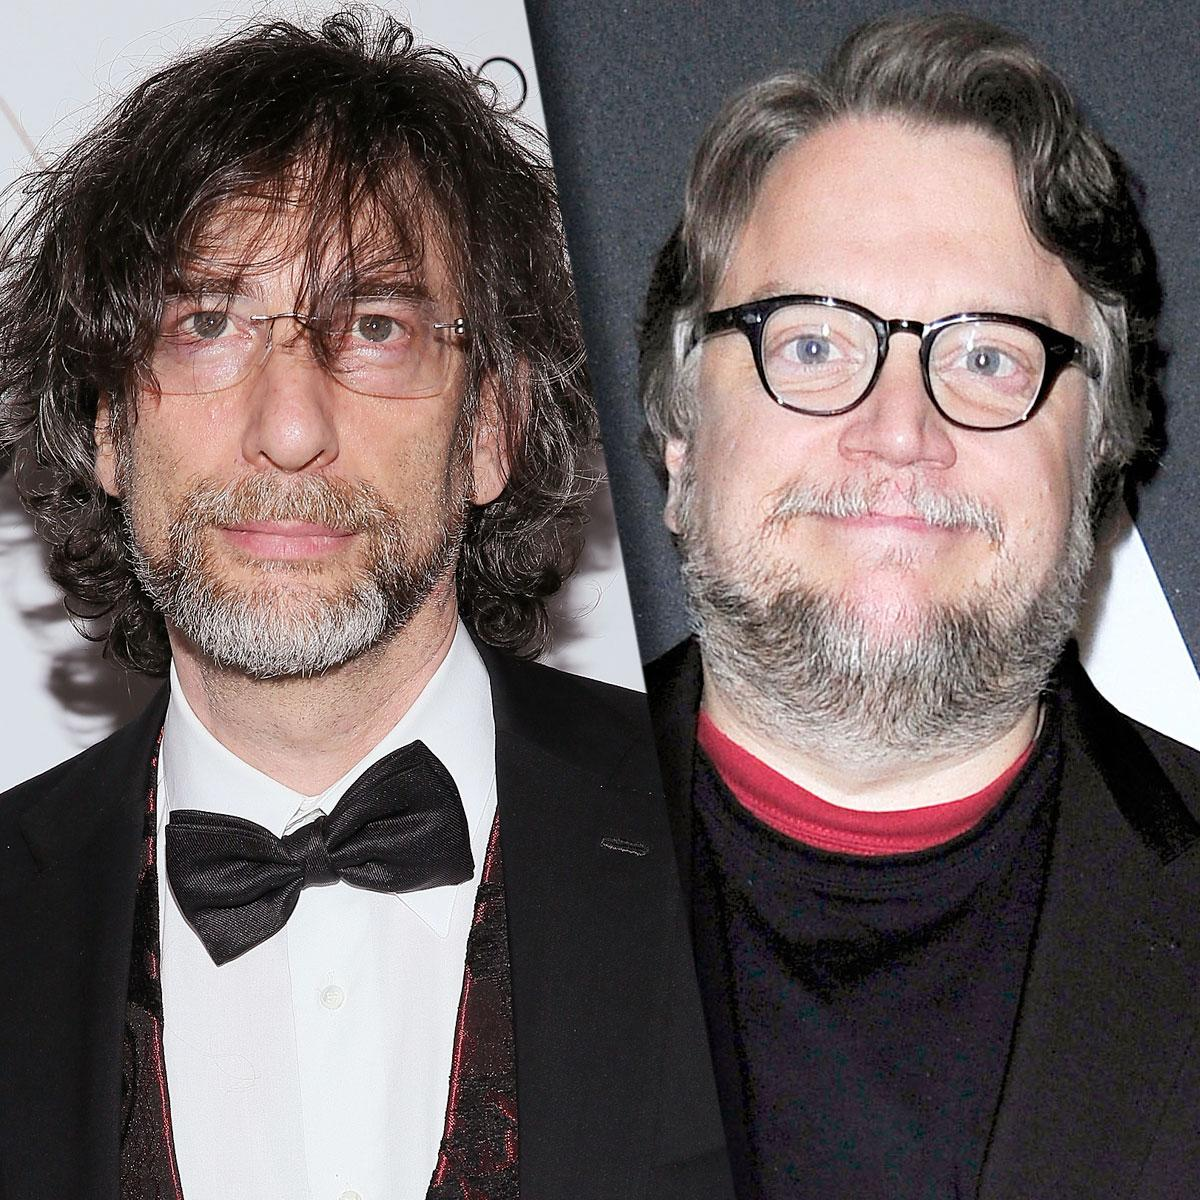 Remember When Guillermo del Toro and Neil Gaiman Almost Made the Doctor Strange Movie?